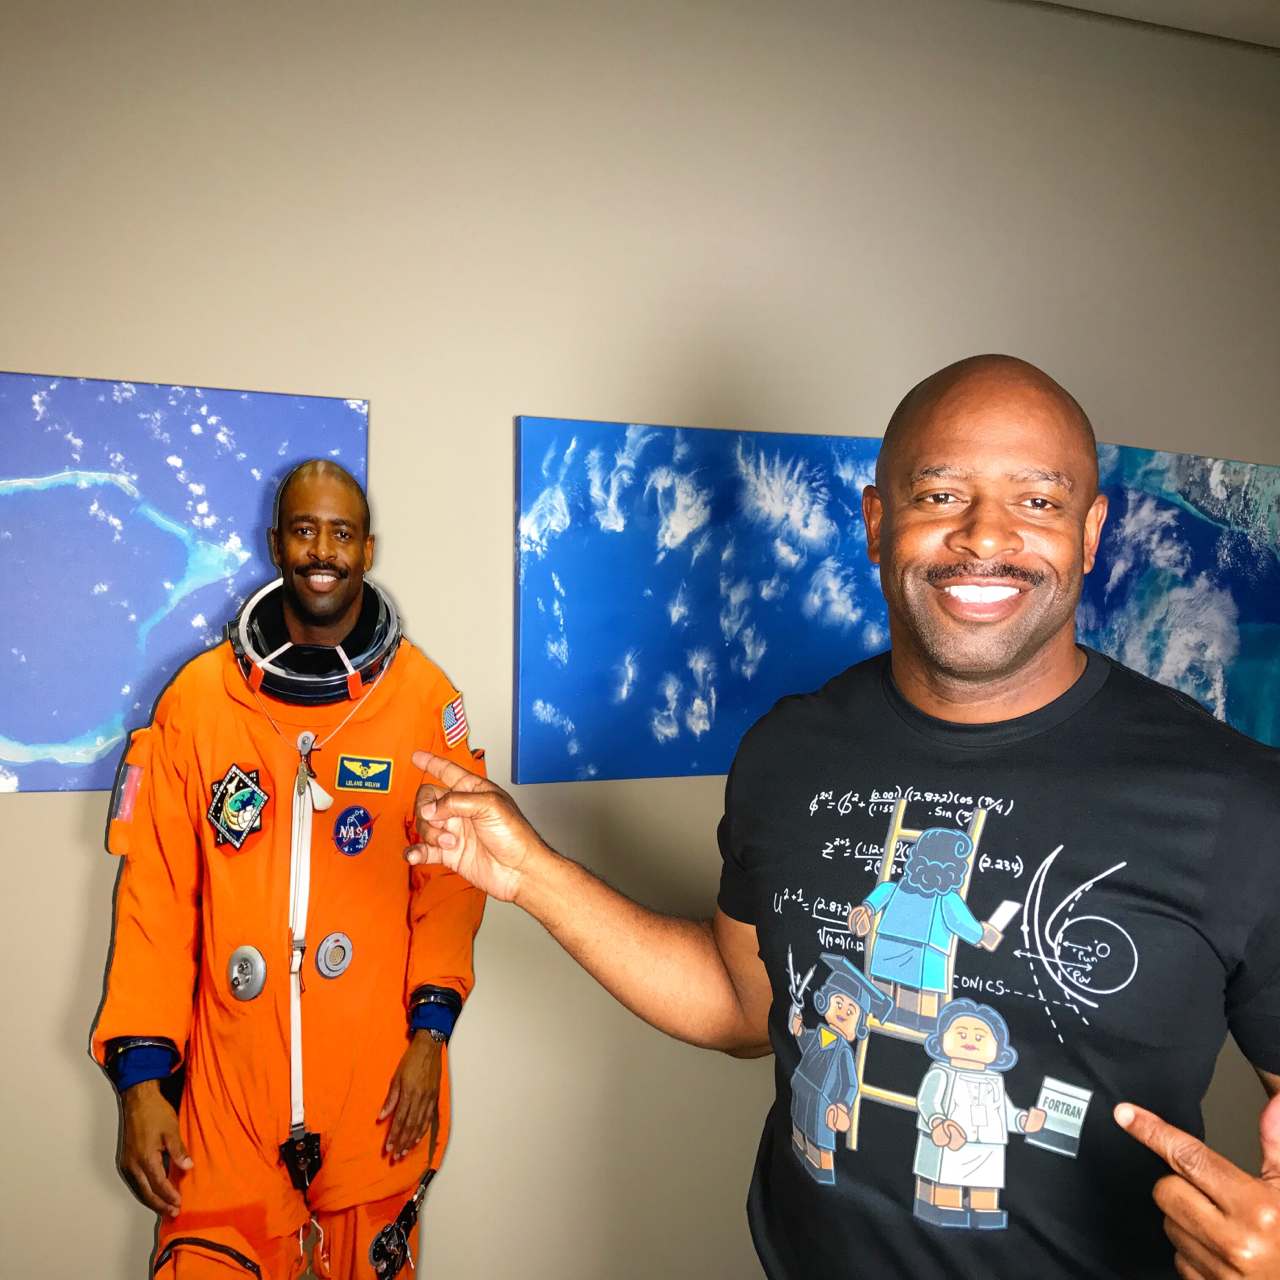 My #sheros and superwomen on my chest helped get that flat guy behind me to space. Thanks @pacalin for beautifully showing, our no longer @hiddenfiguresmovie , how to get #STEAM done. Thanks @sumrtime for making it happen. Buy a tee to support the legacy of @makerswomen #katherinejohnson #dorothyvaughan and #maryjackson to help inspire our future Explorers like @astrostarbright. Godspeed on the journey. 🚀👩🏾💻👩🏽🚀